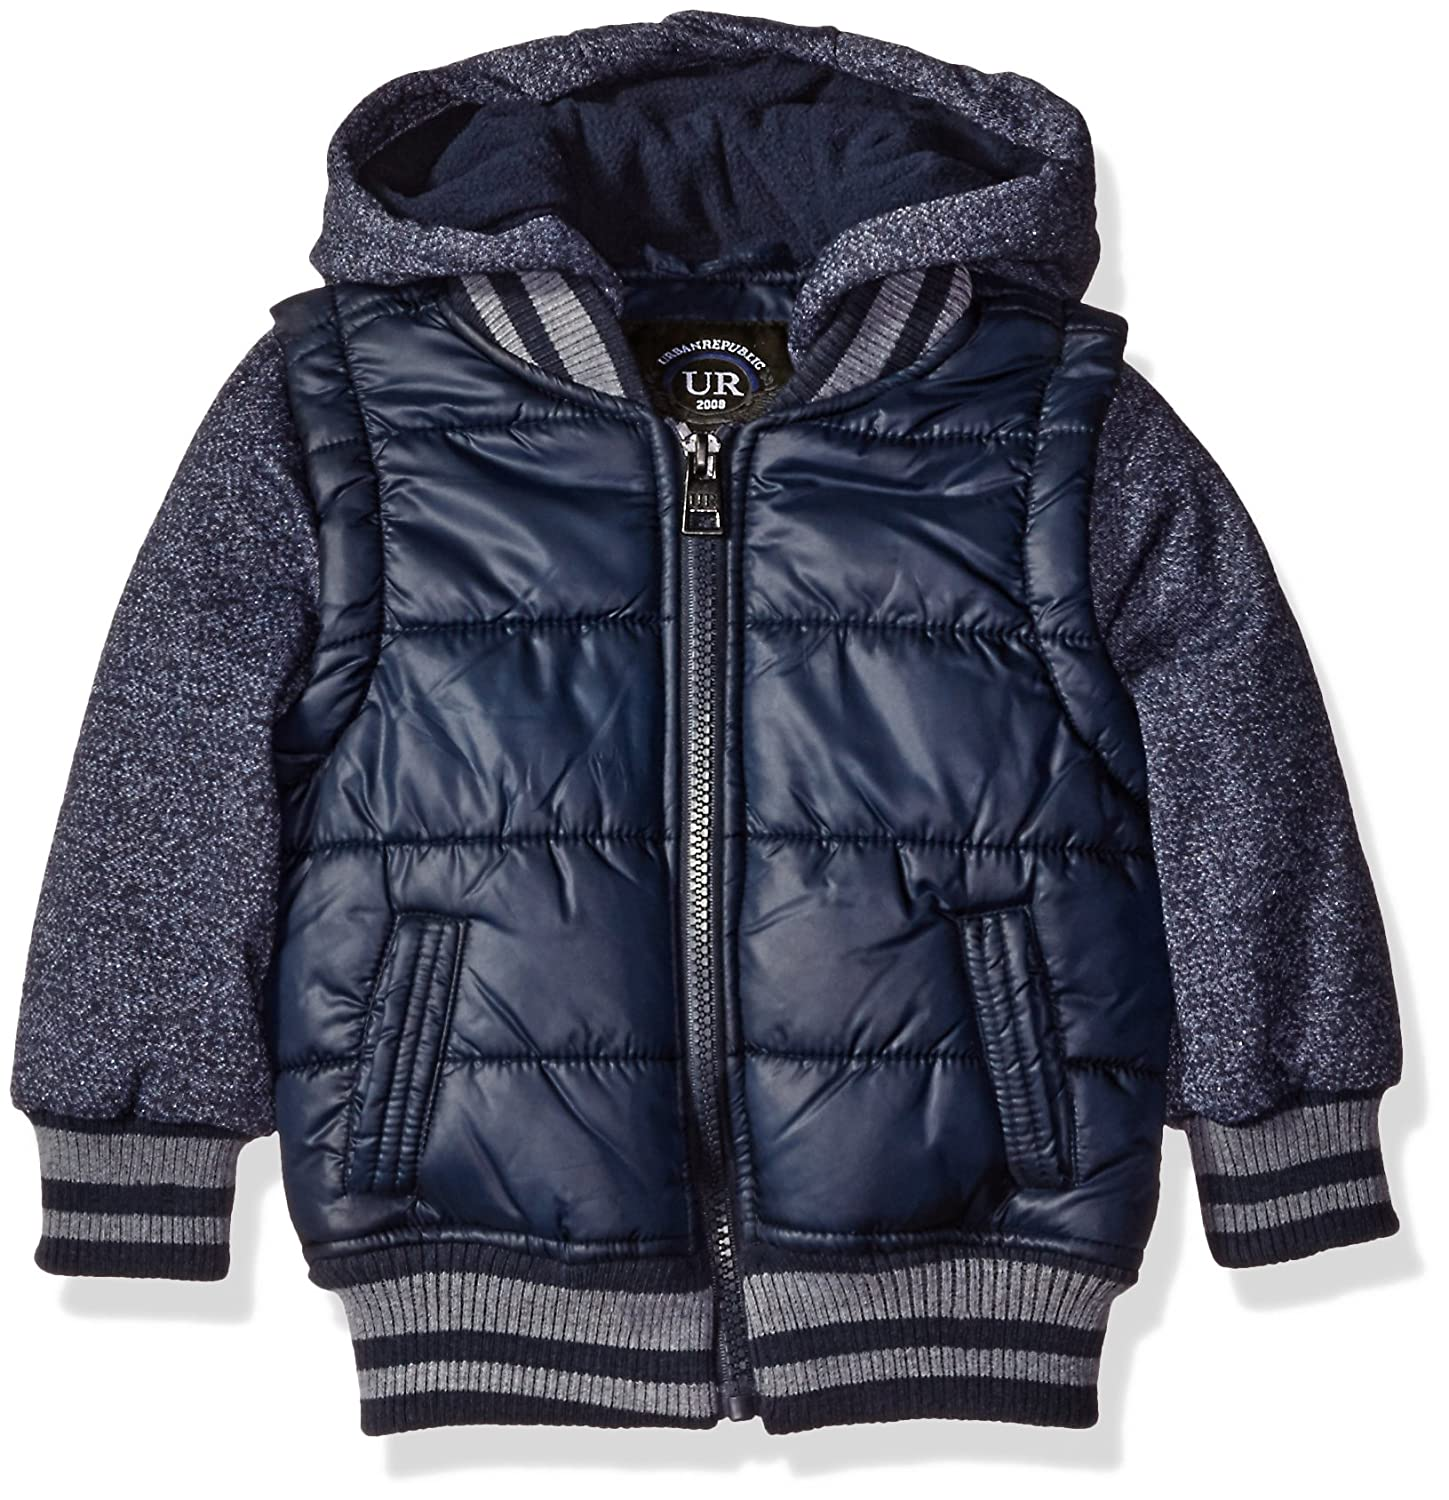 Urban Republic Baby Boys' Infant Heavyweight Polyester Puffer Jacket 6135I